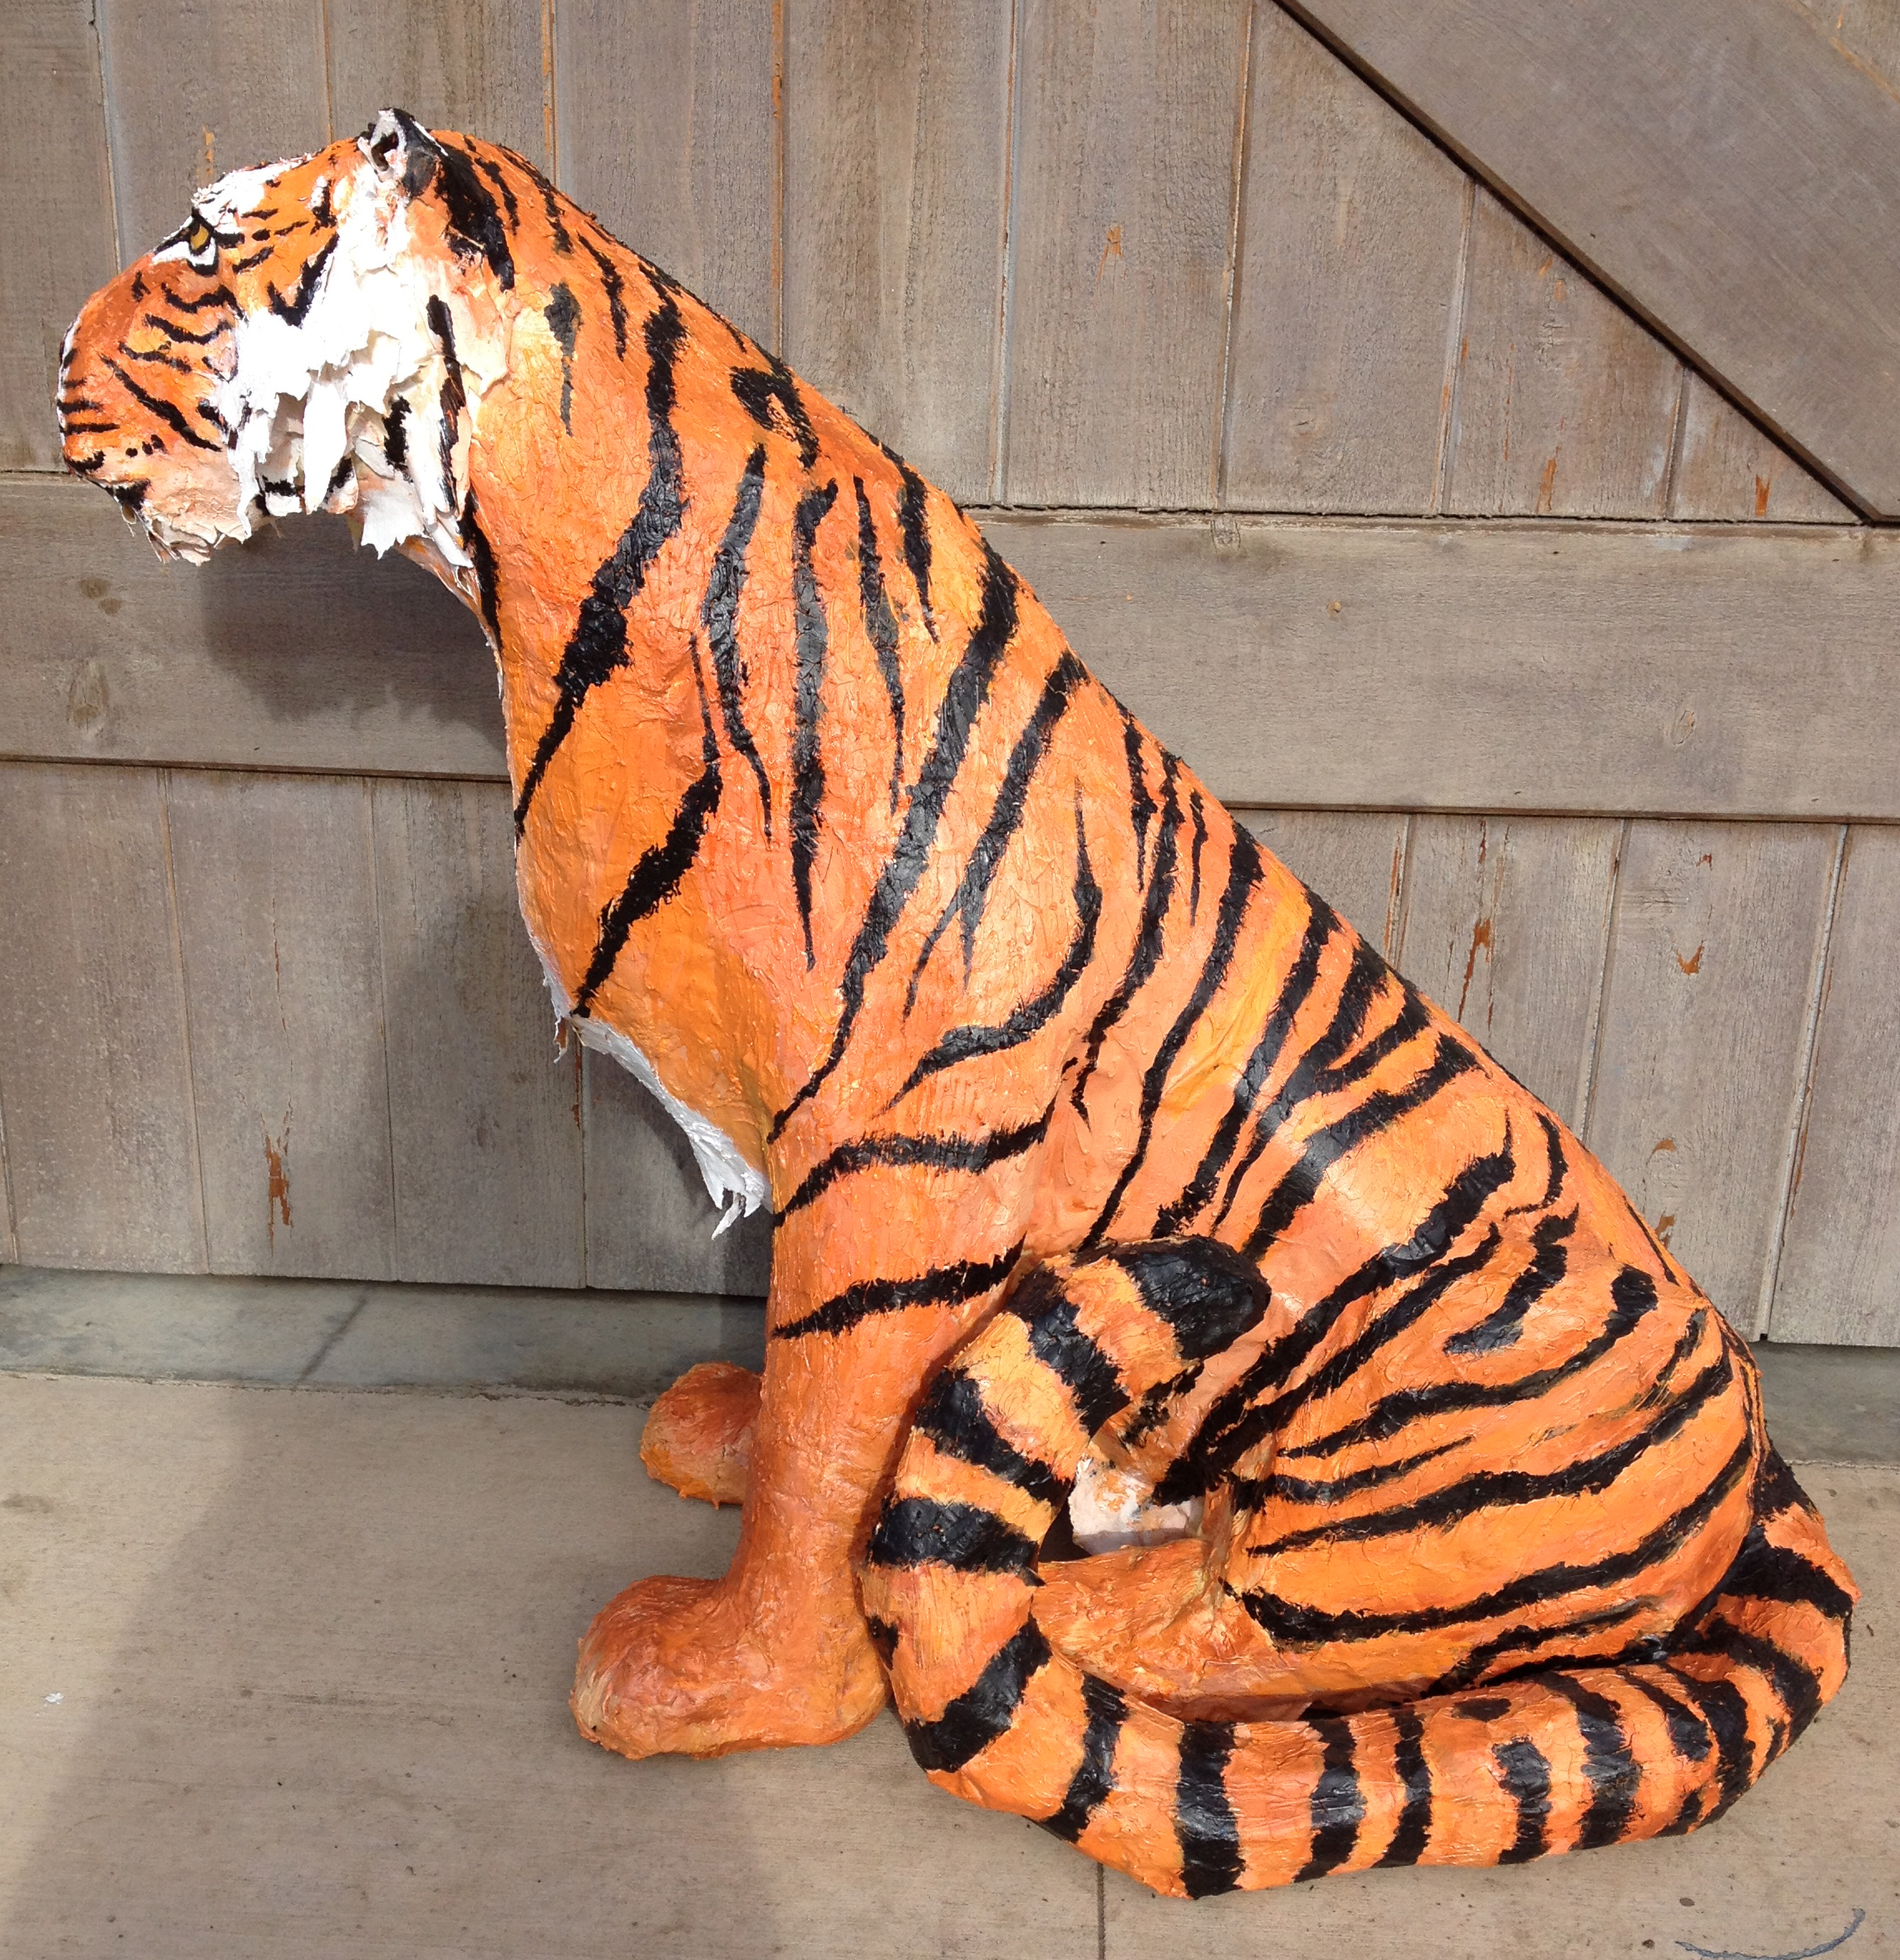 Tiger side view